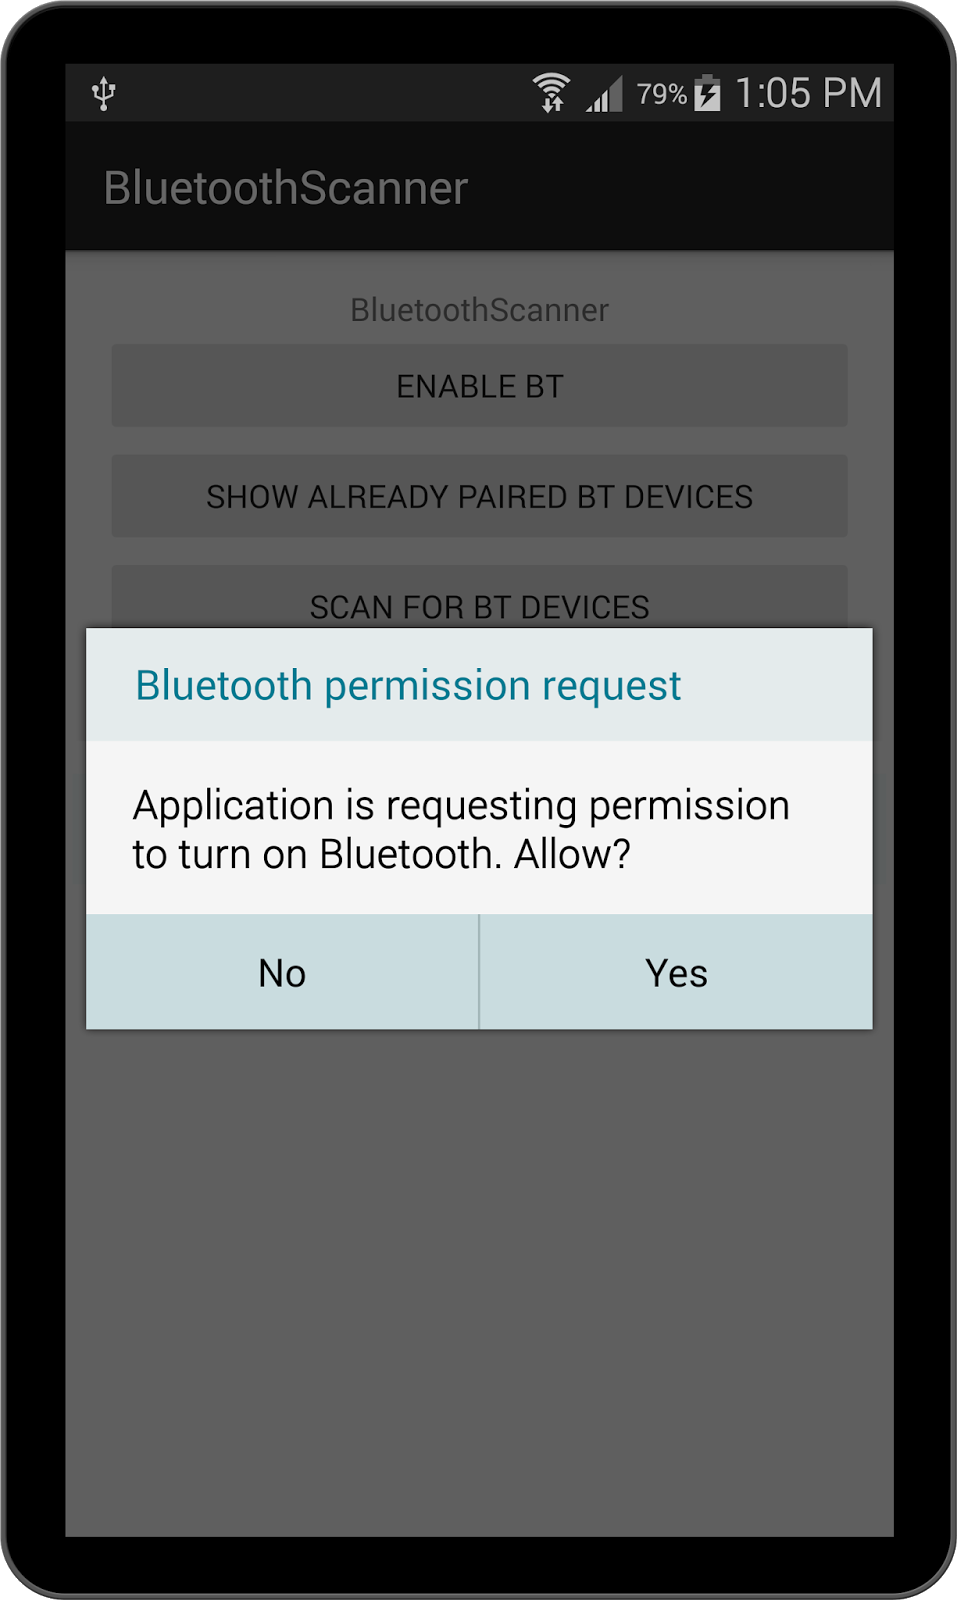 Too Many Tutorials: Scanning for Bluetooth devices in Android